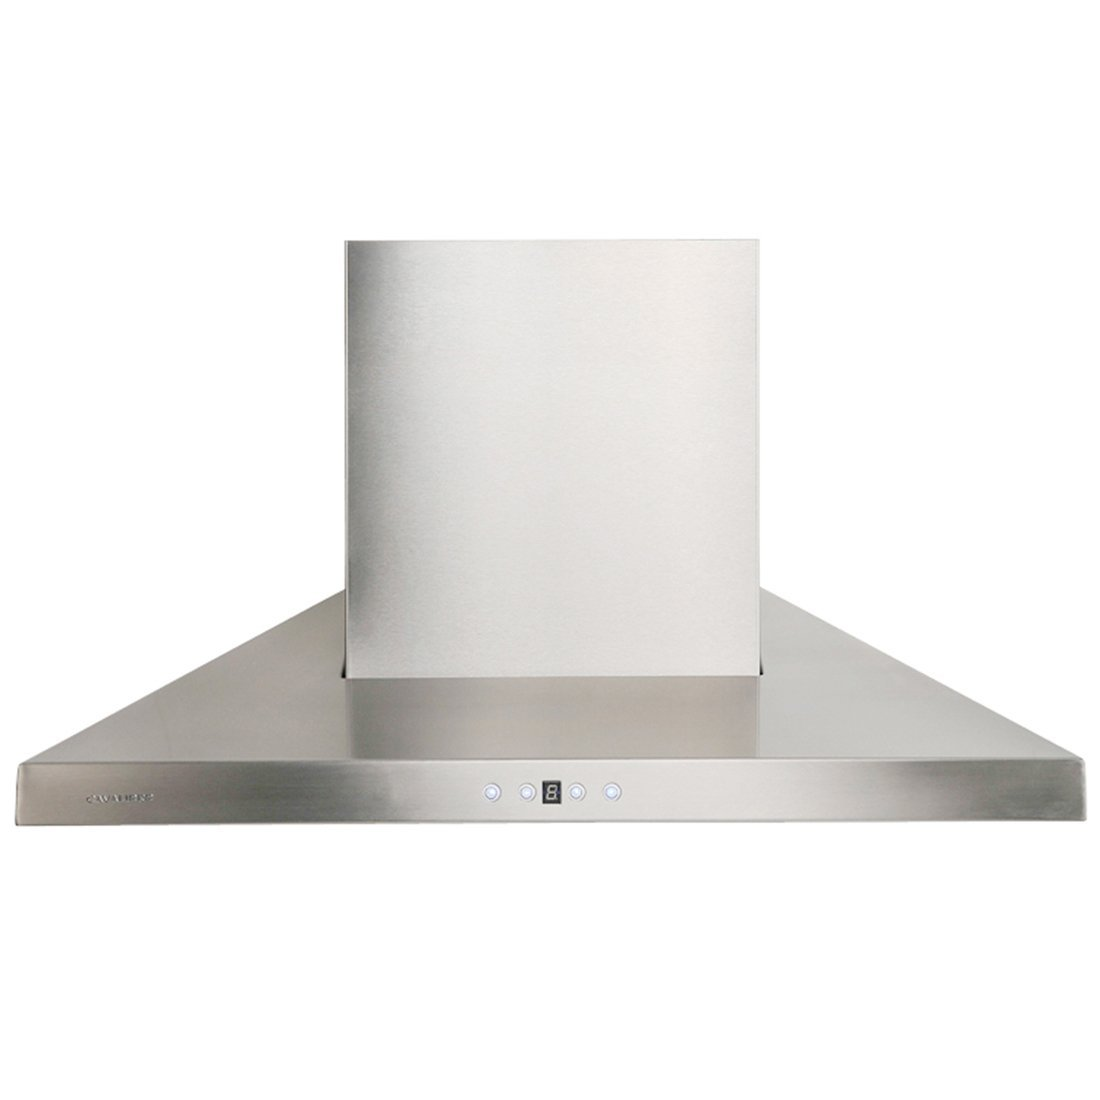 CAVALIERE AP238-PSL-30 Wall Mounted Stainless Steel Kitchen Range Hood, 30'' W by CAVALIERE